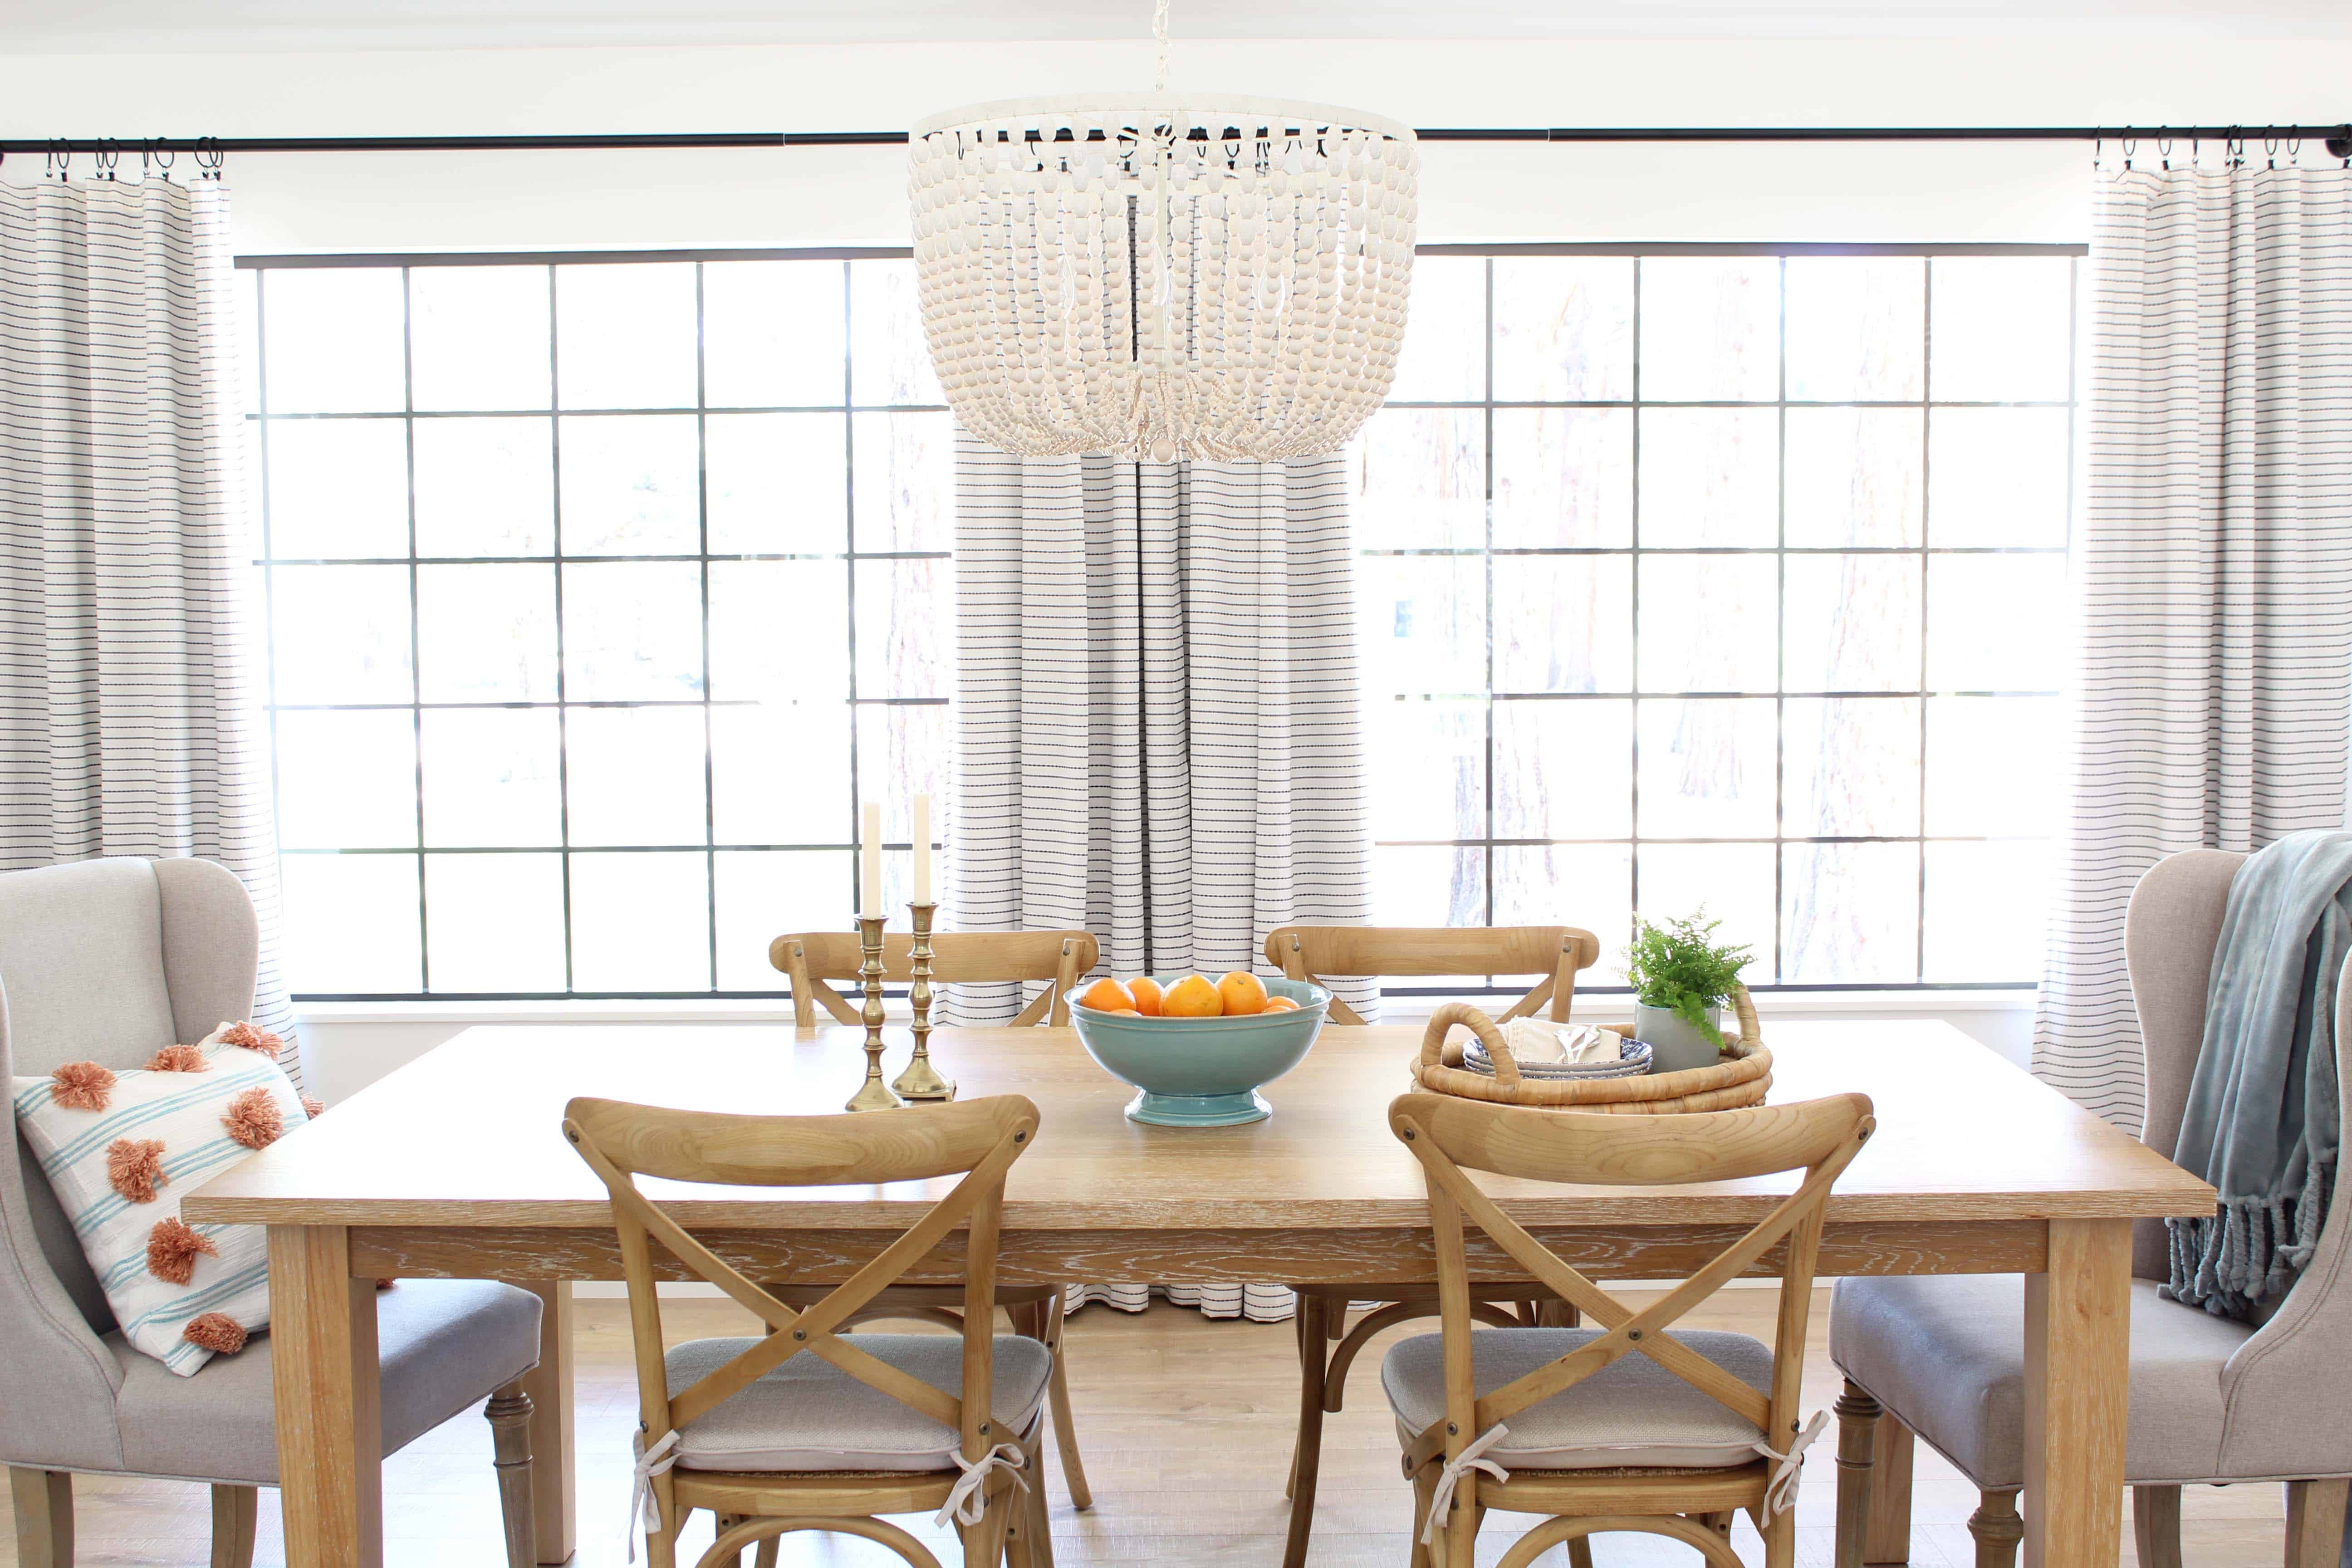 pier 1 dining room table, farmhouse bistro chairs, world market beaded chandelier